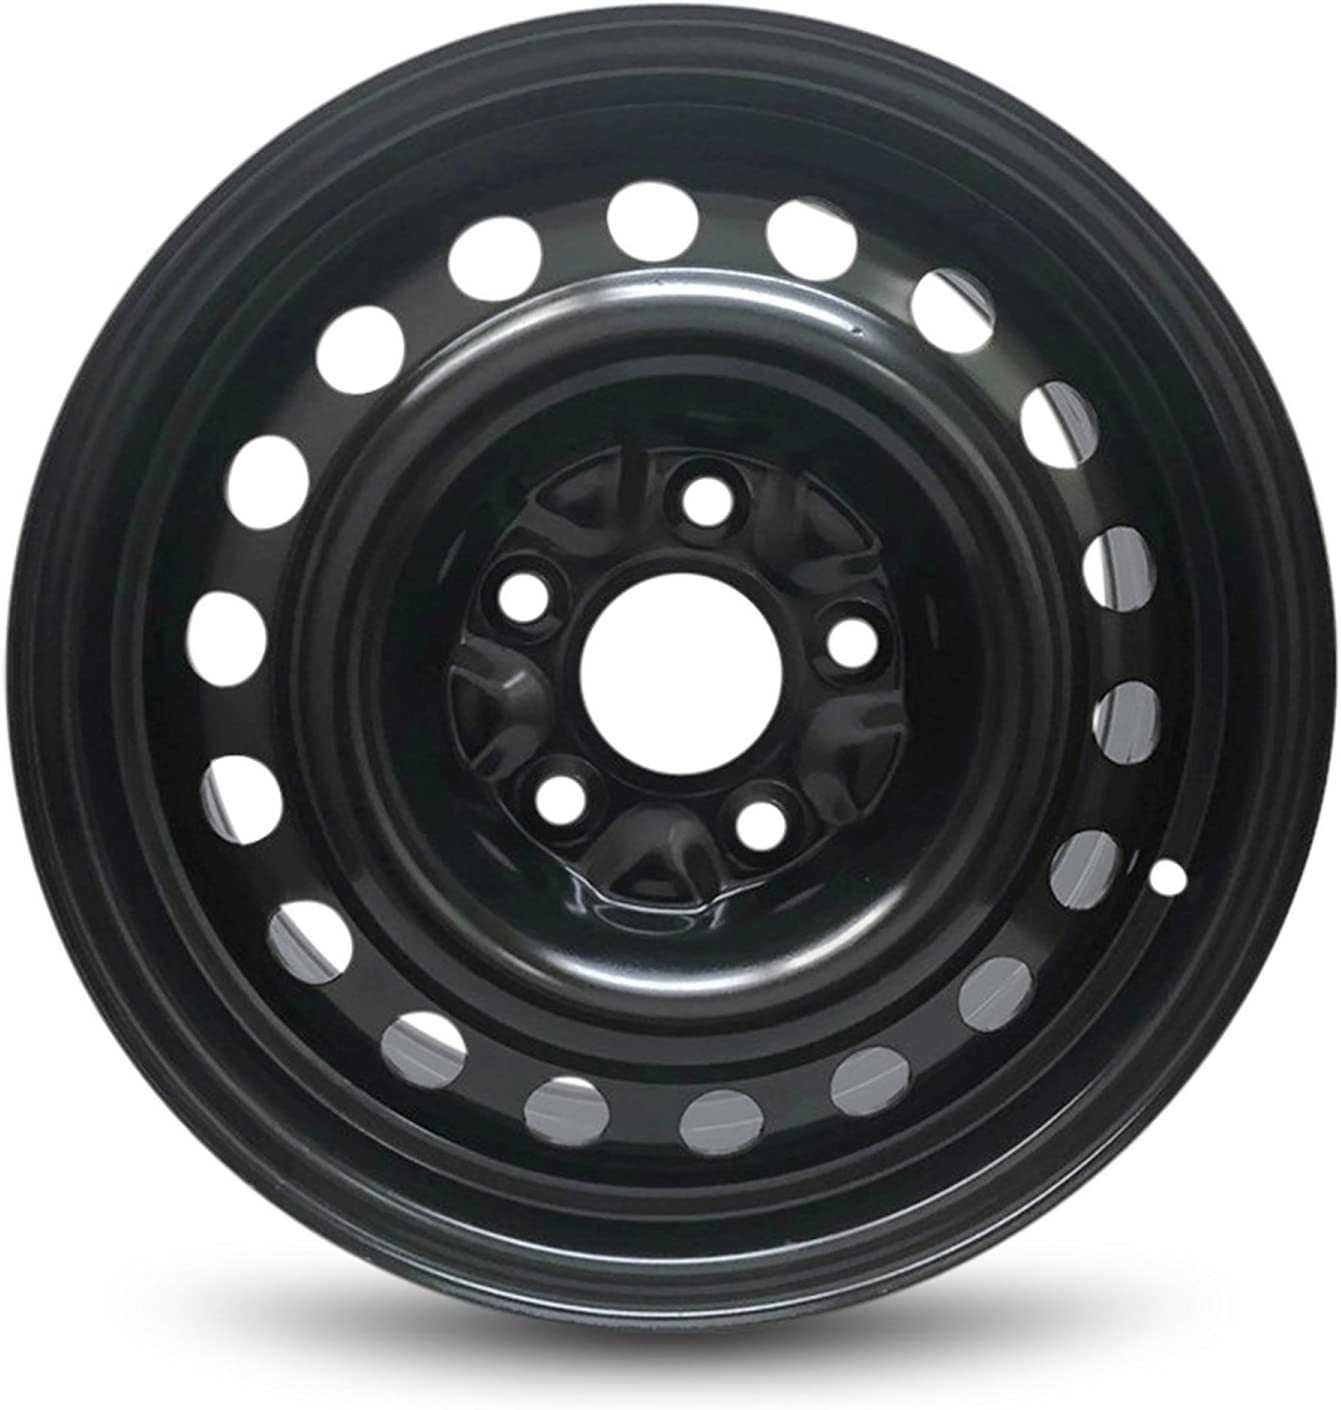 Road Ready Car Wheel For Dodge Caravan (08-13) And Chrysler Town & Country (08-10) 16 Inch 5 Lug Steel Rim Fits R16 Tire - Exact OEM Replacement - Full-Size Spare